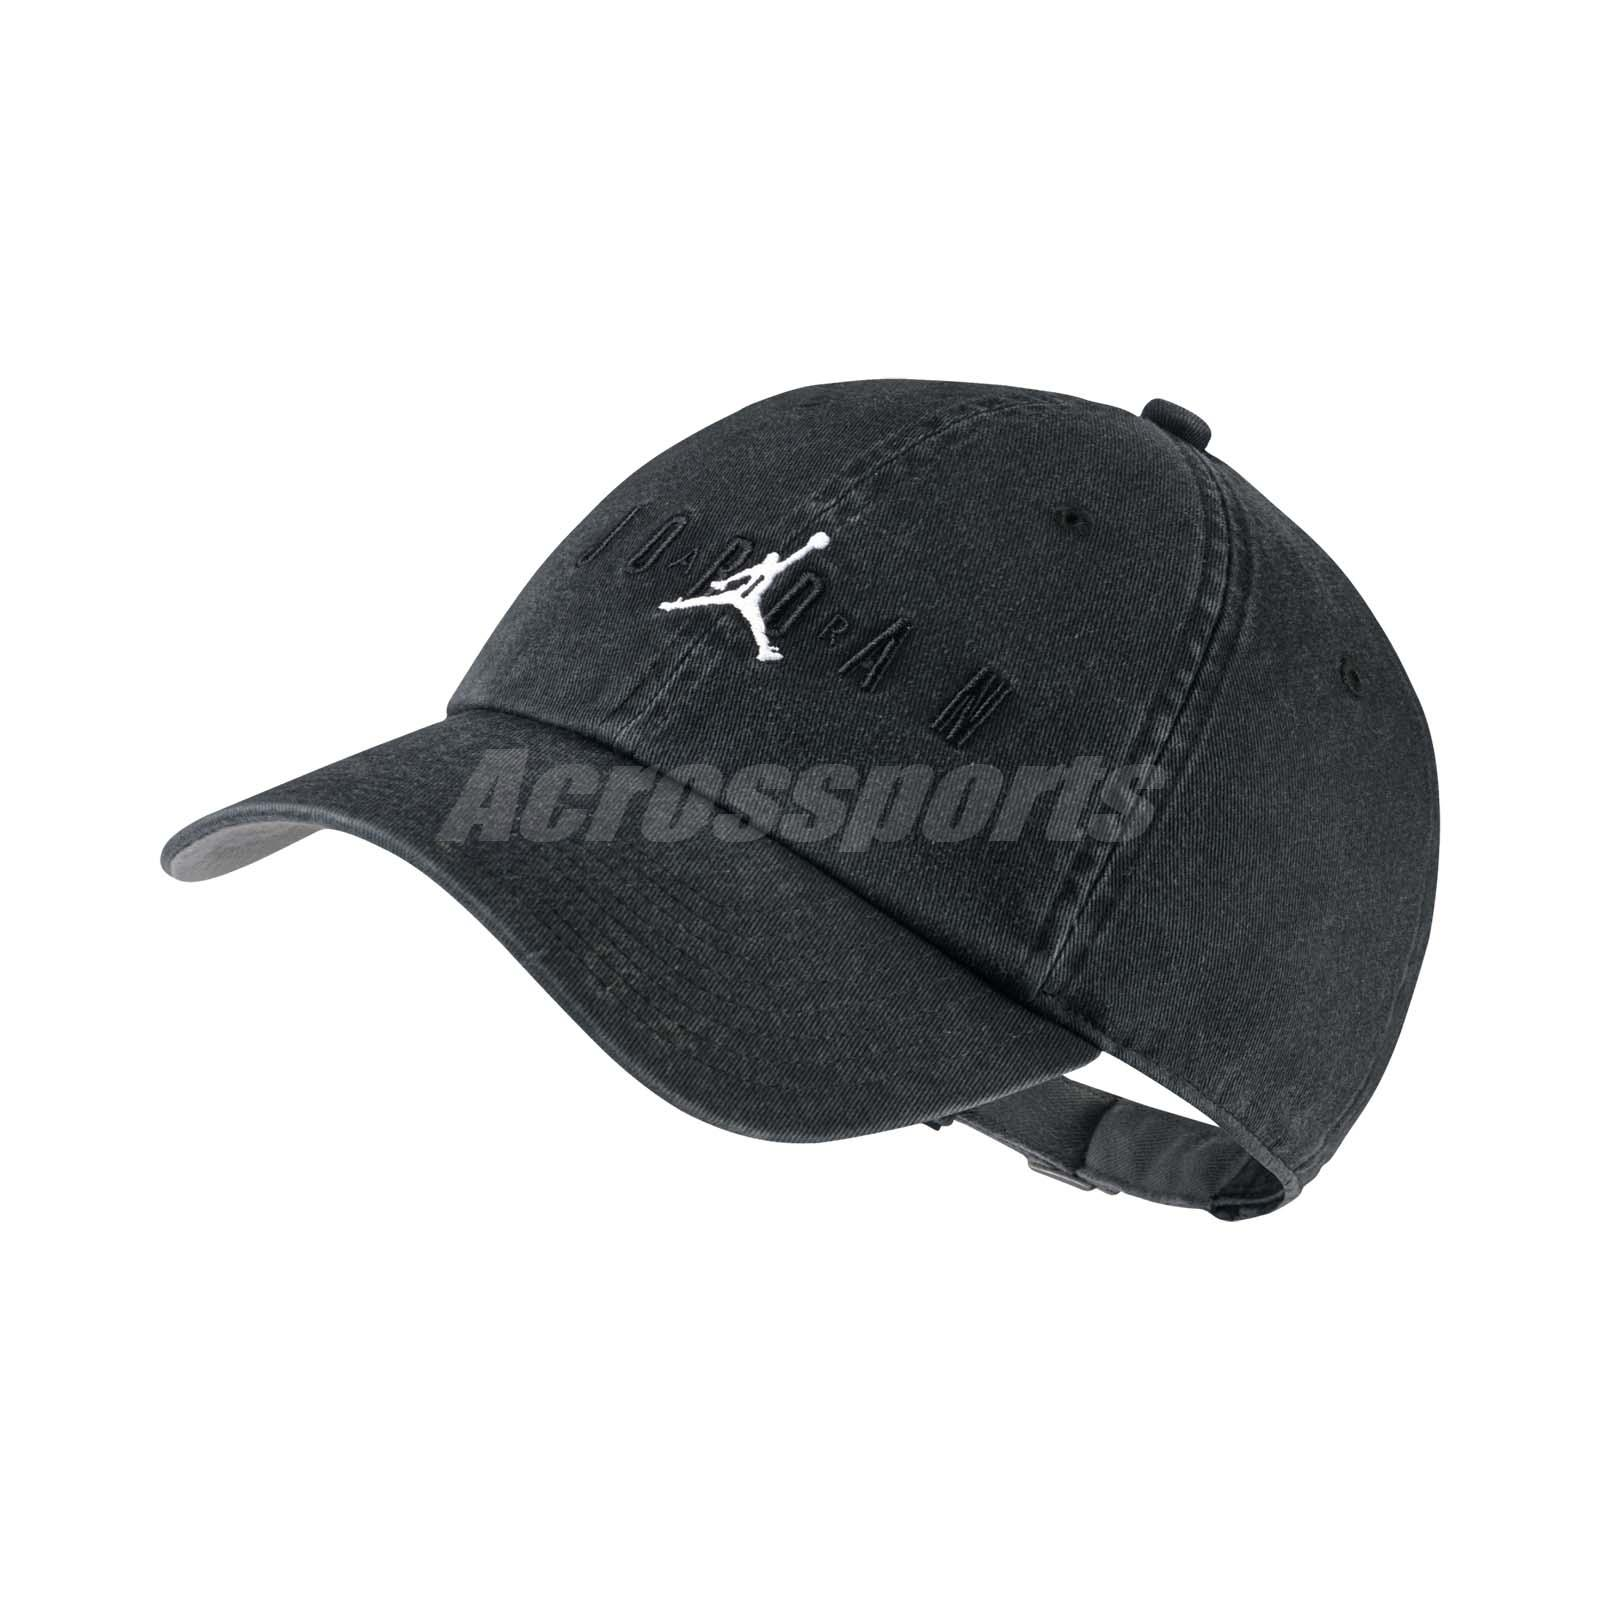 online store a8a9a 92b62 ... get nike jordan heritage 86 jumpman air cap h86 hat sports washed black  aa1306 010 ee623